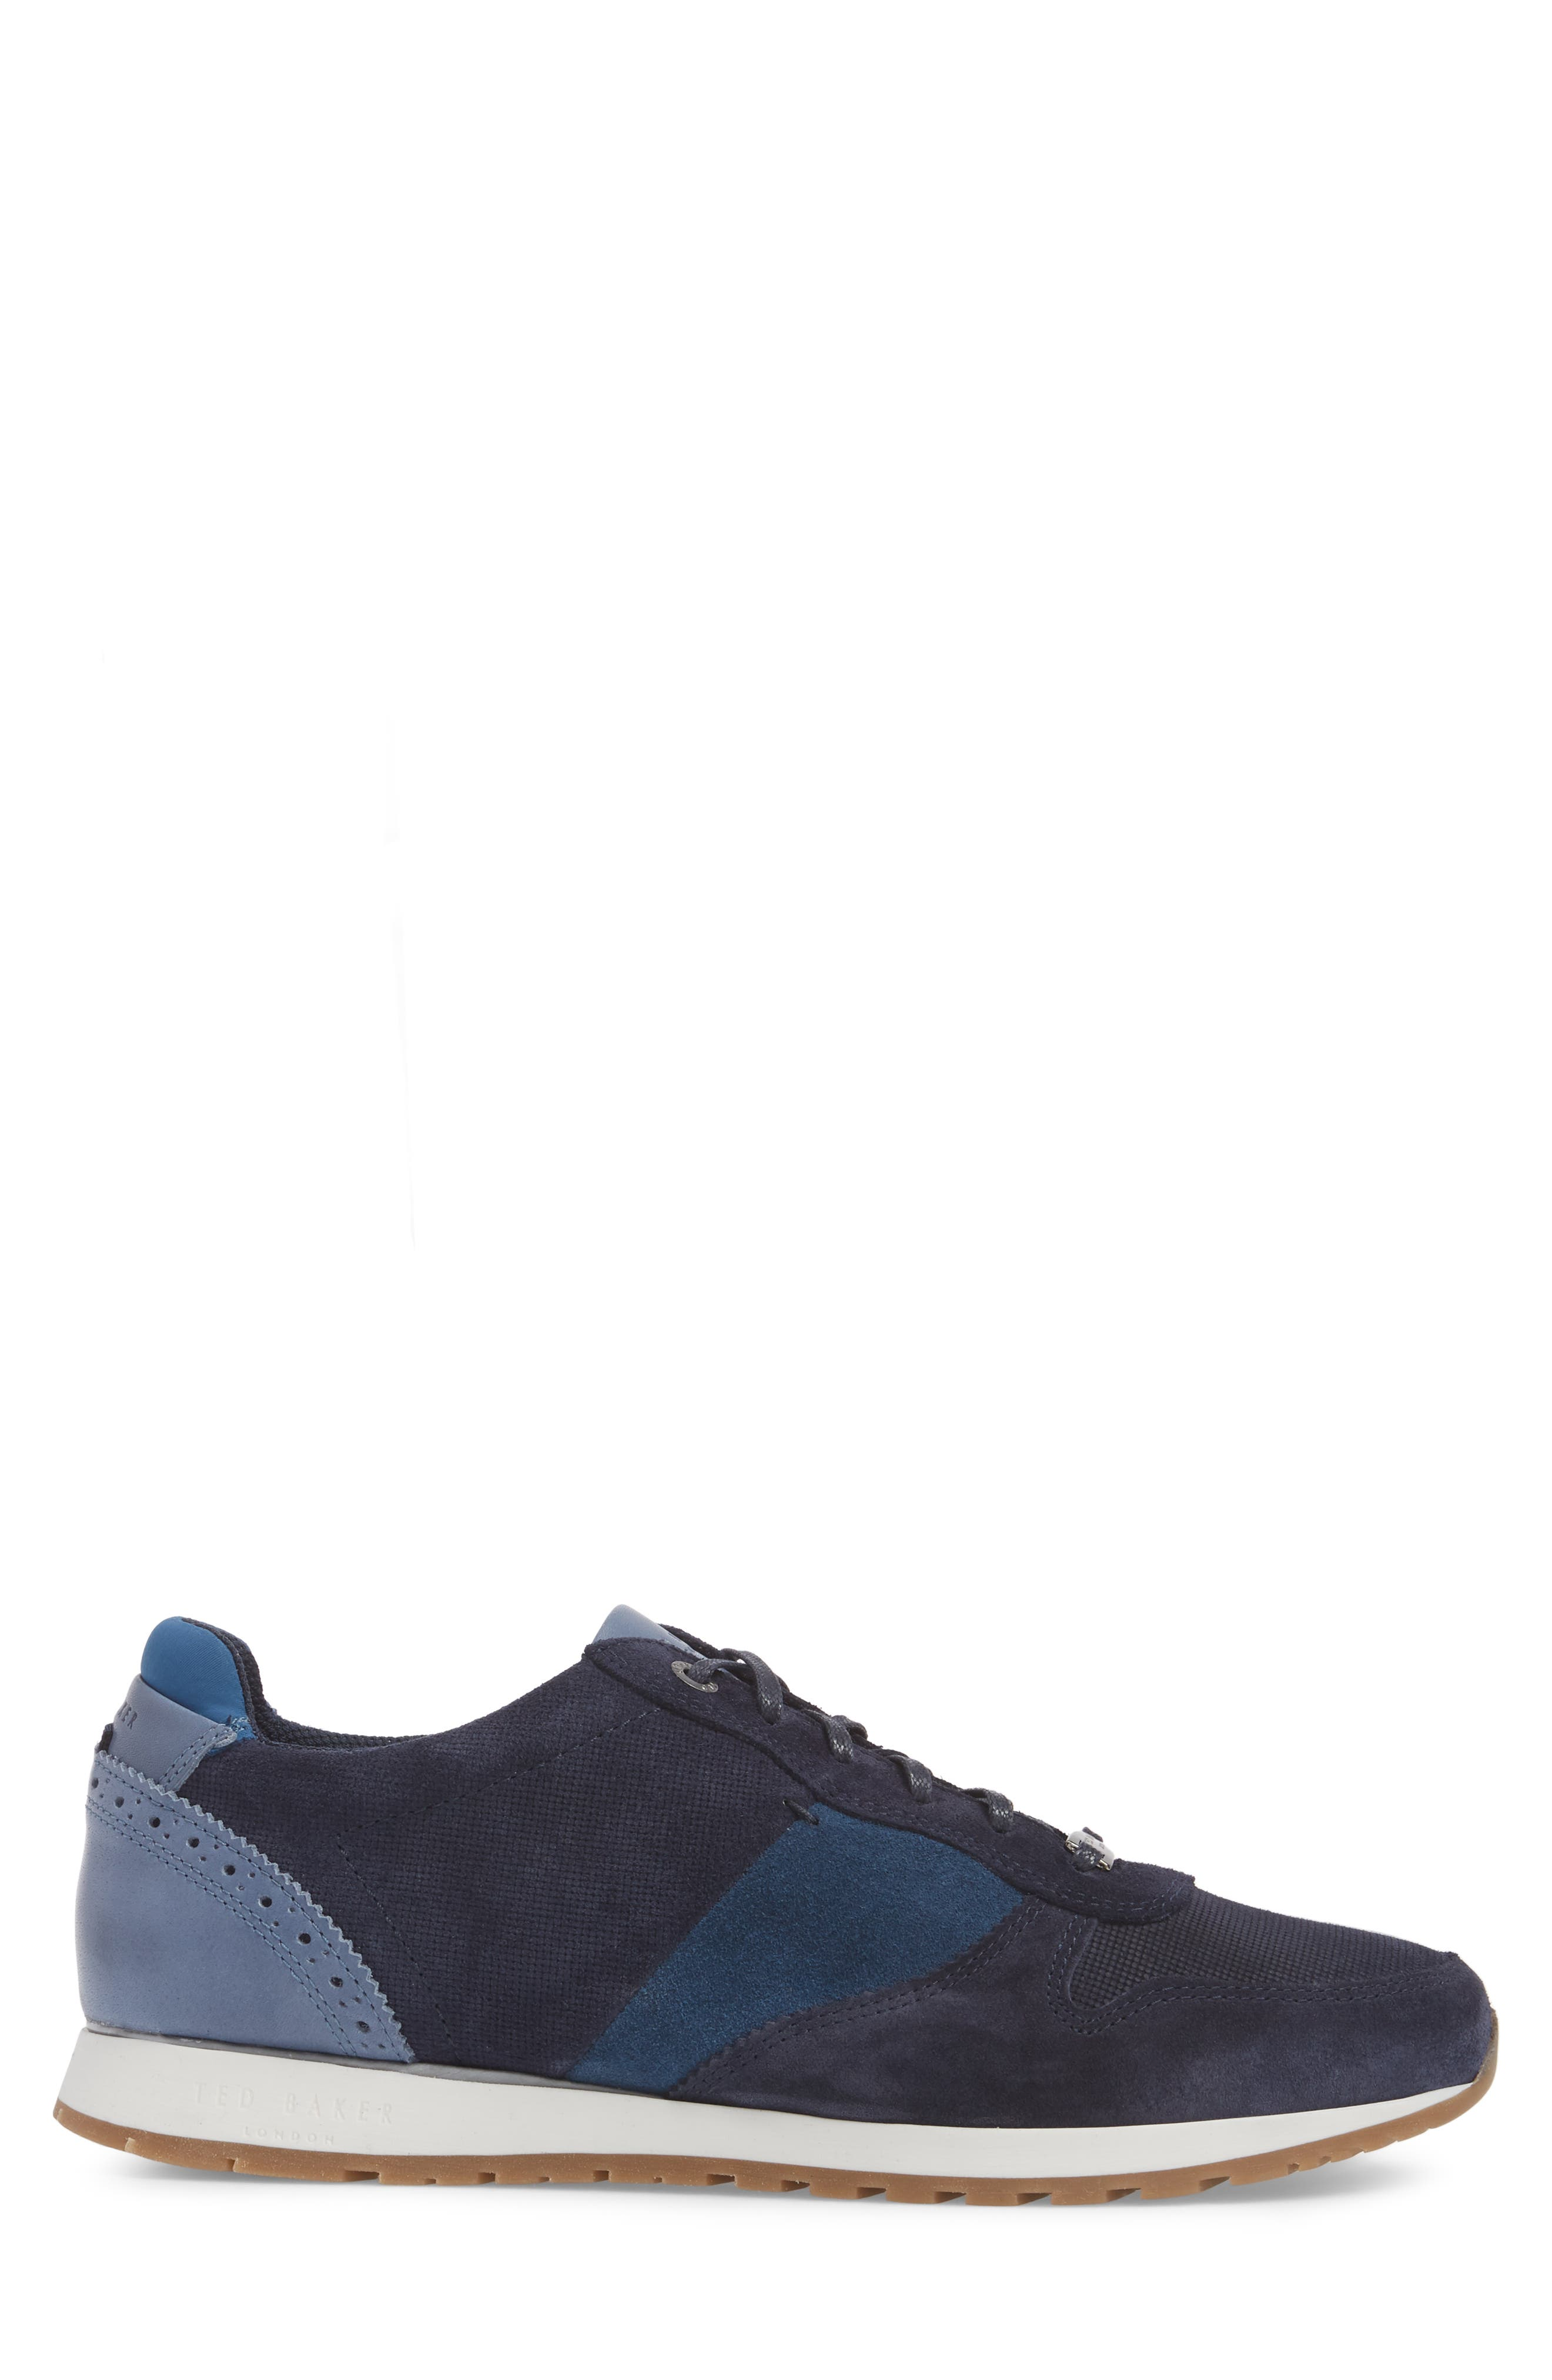 Shindls Low Top Sneaker,                             Alternate thumbnail 3, color,                             BLUE LEATHER/ SUEDE